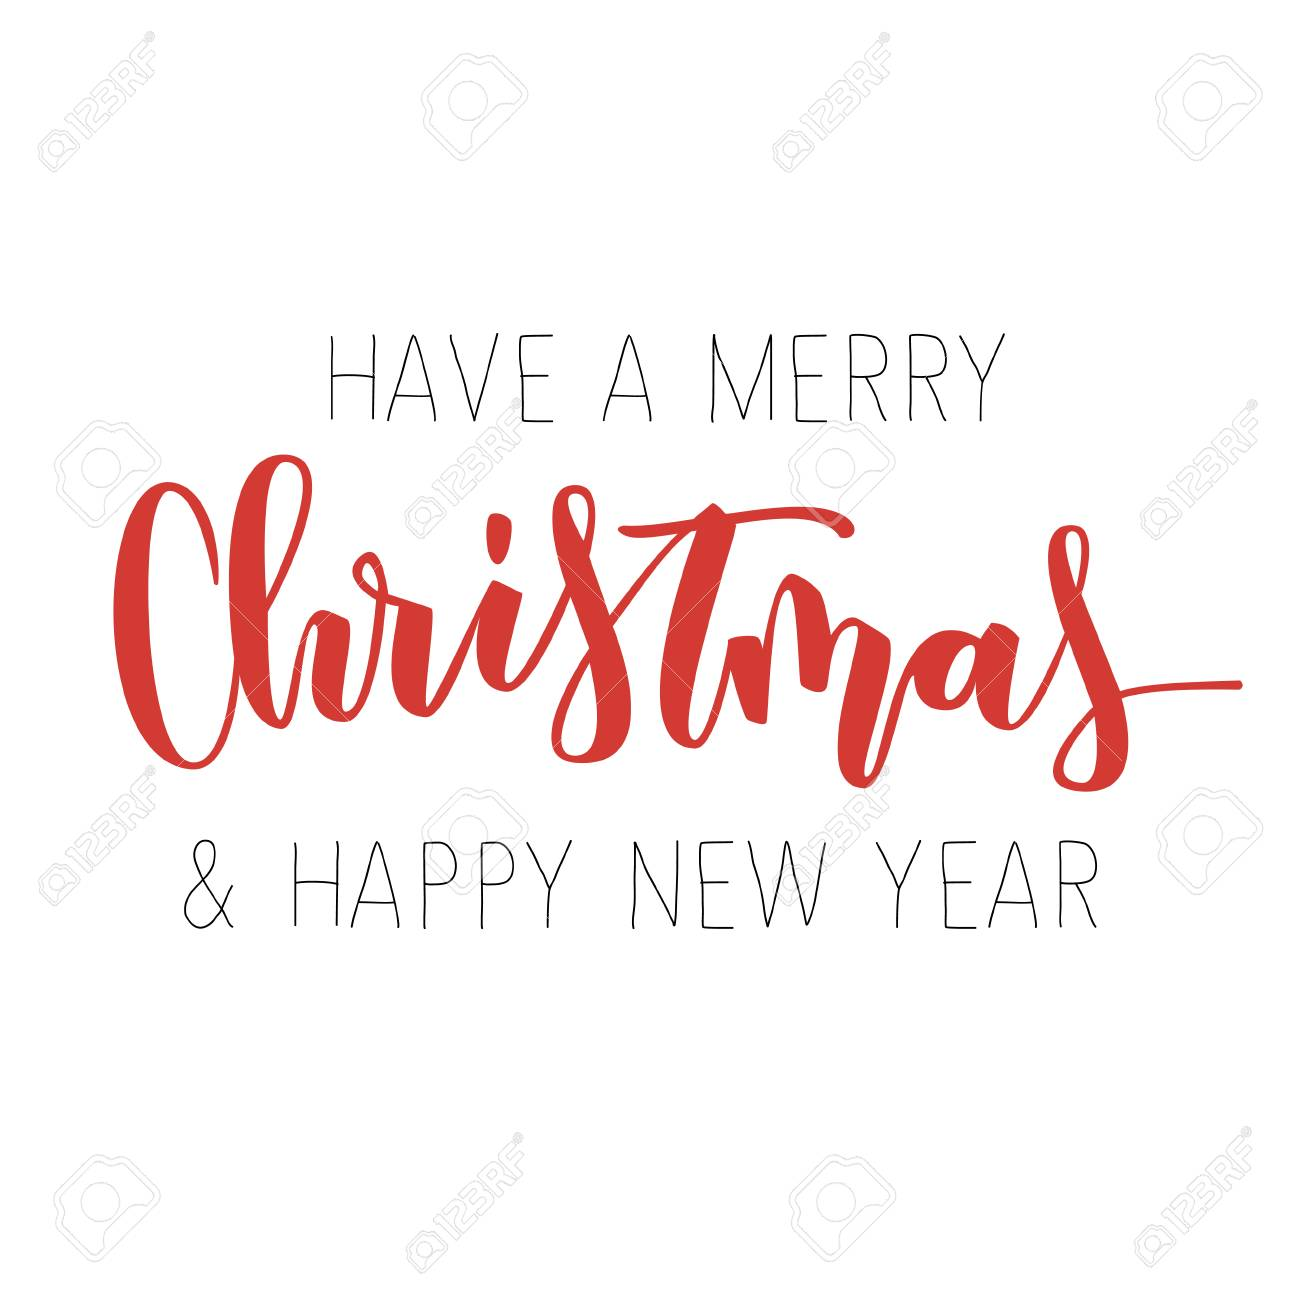 merry christmas and happy new year red hand written inscription royalty free cliparts vectors and stock illustration image 65066365 merry christmas and happy new year red hand written inscription